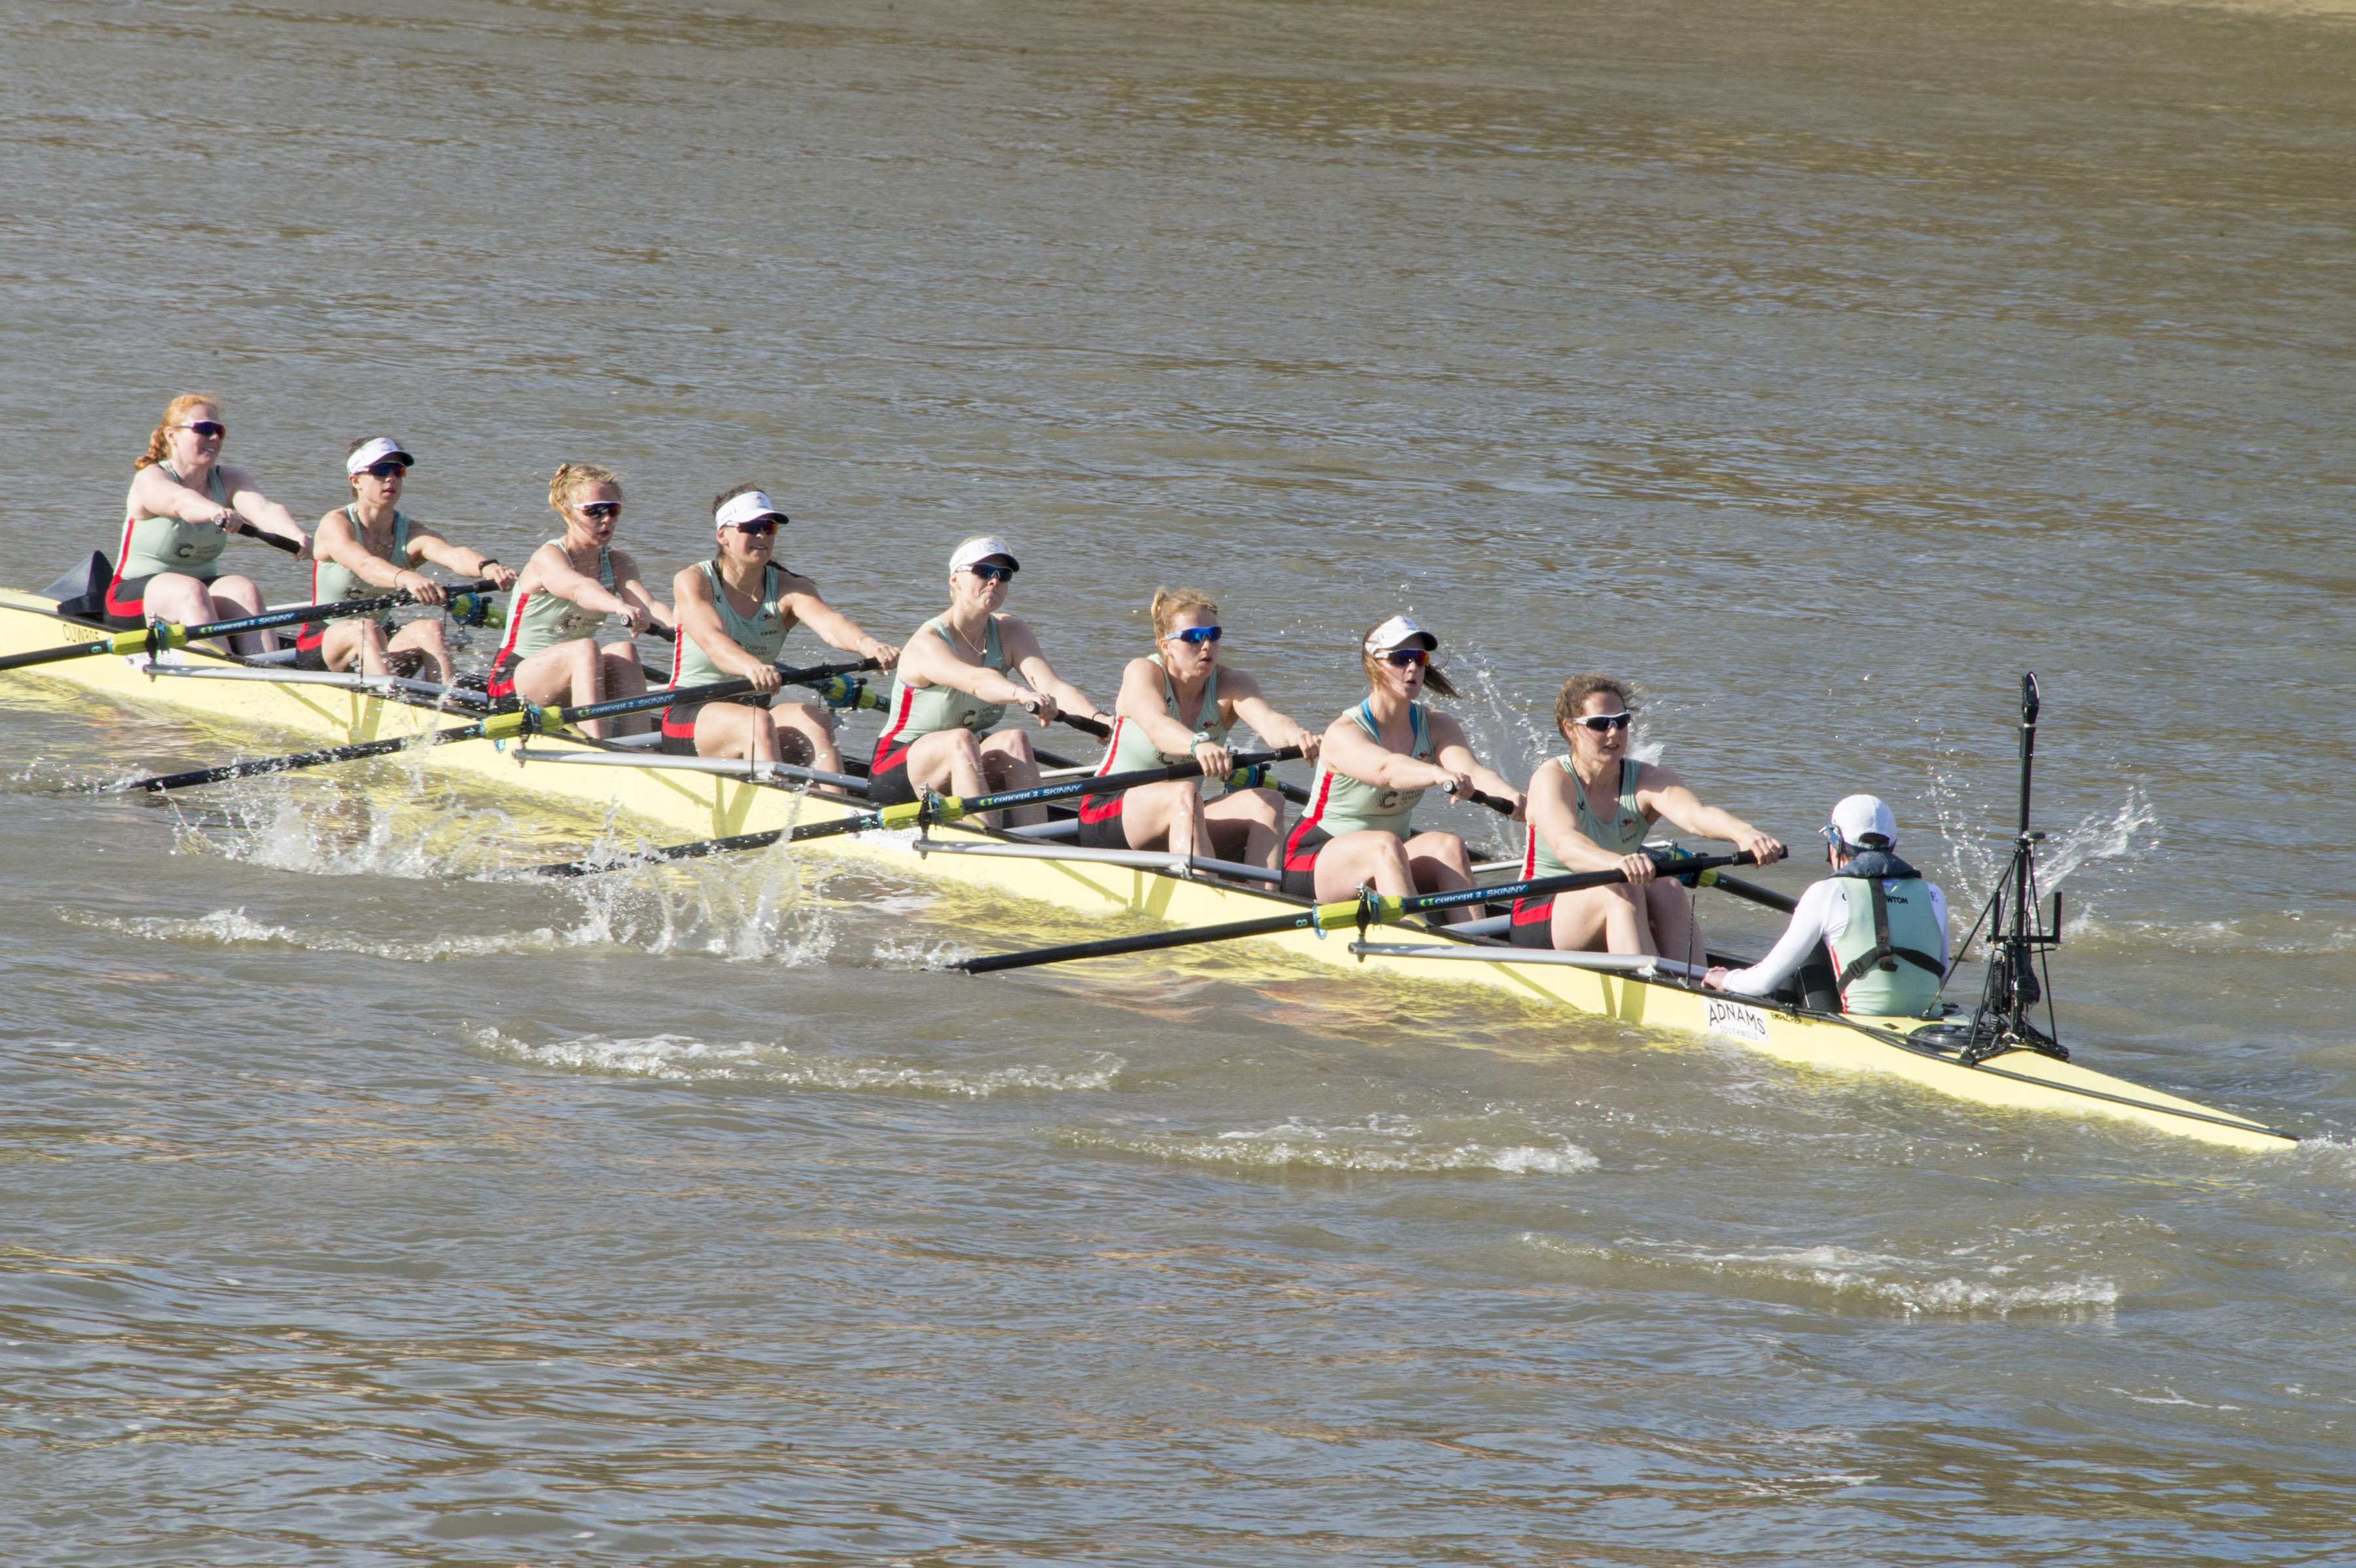 A new study has revealed that prehistoric women had stronger arms than today's top female rowing athletes.